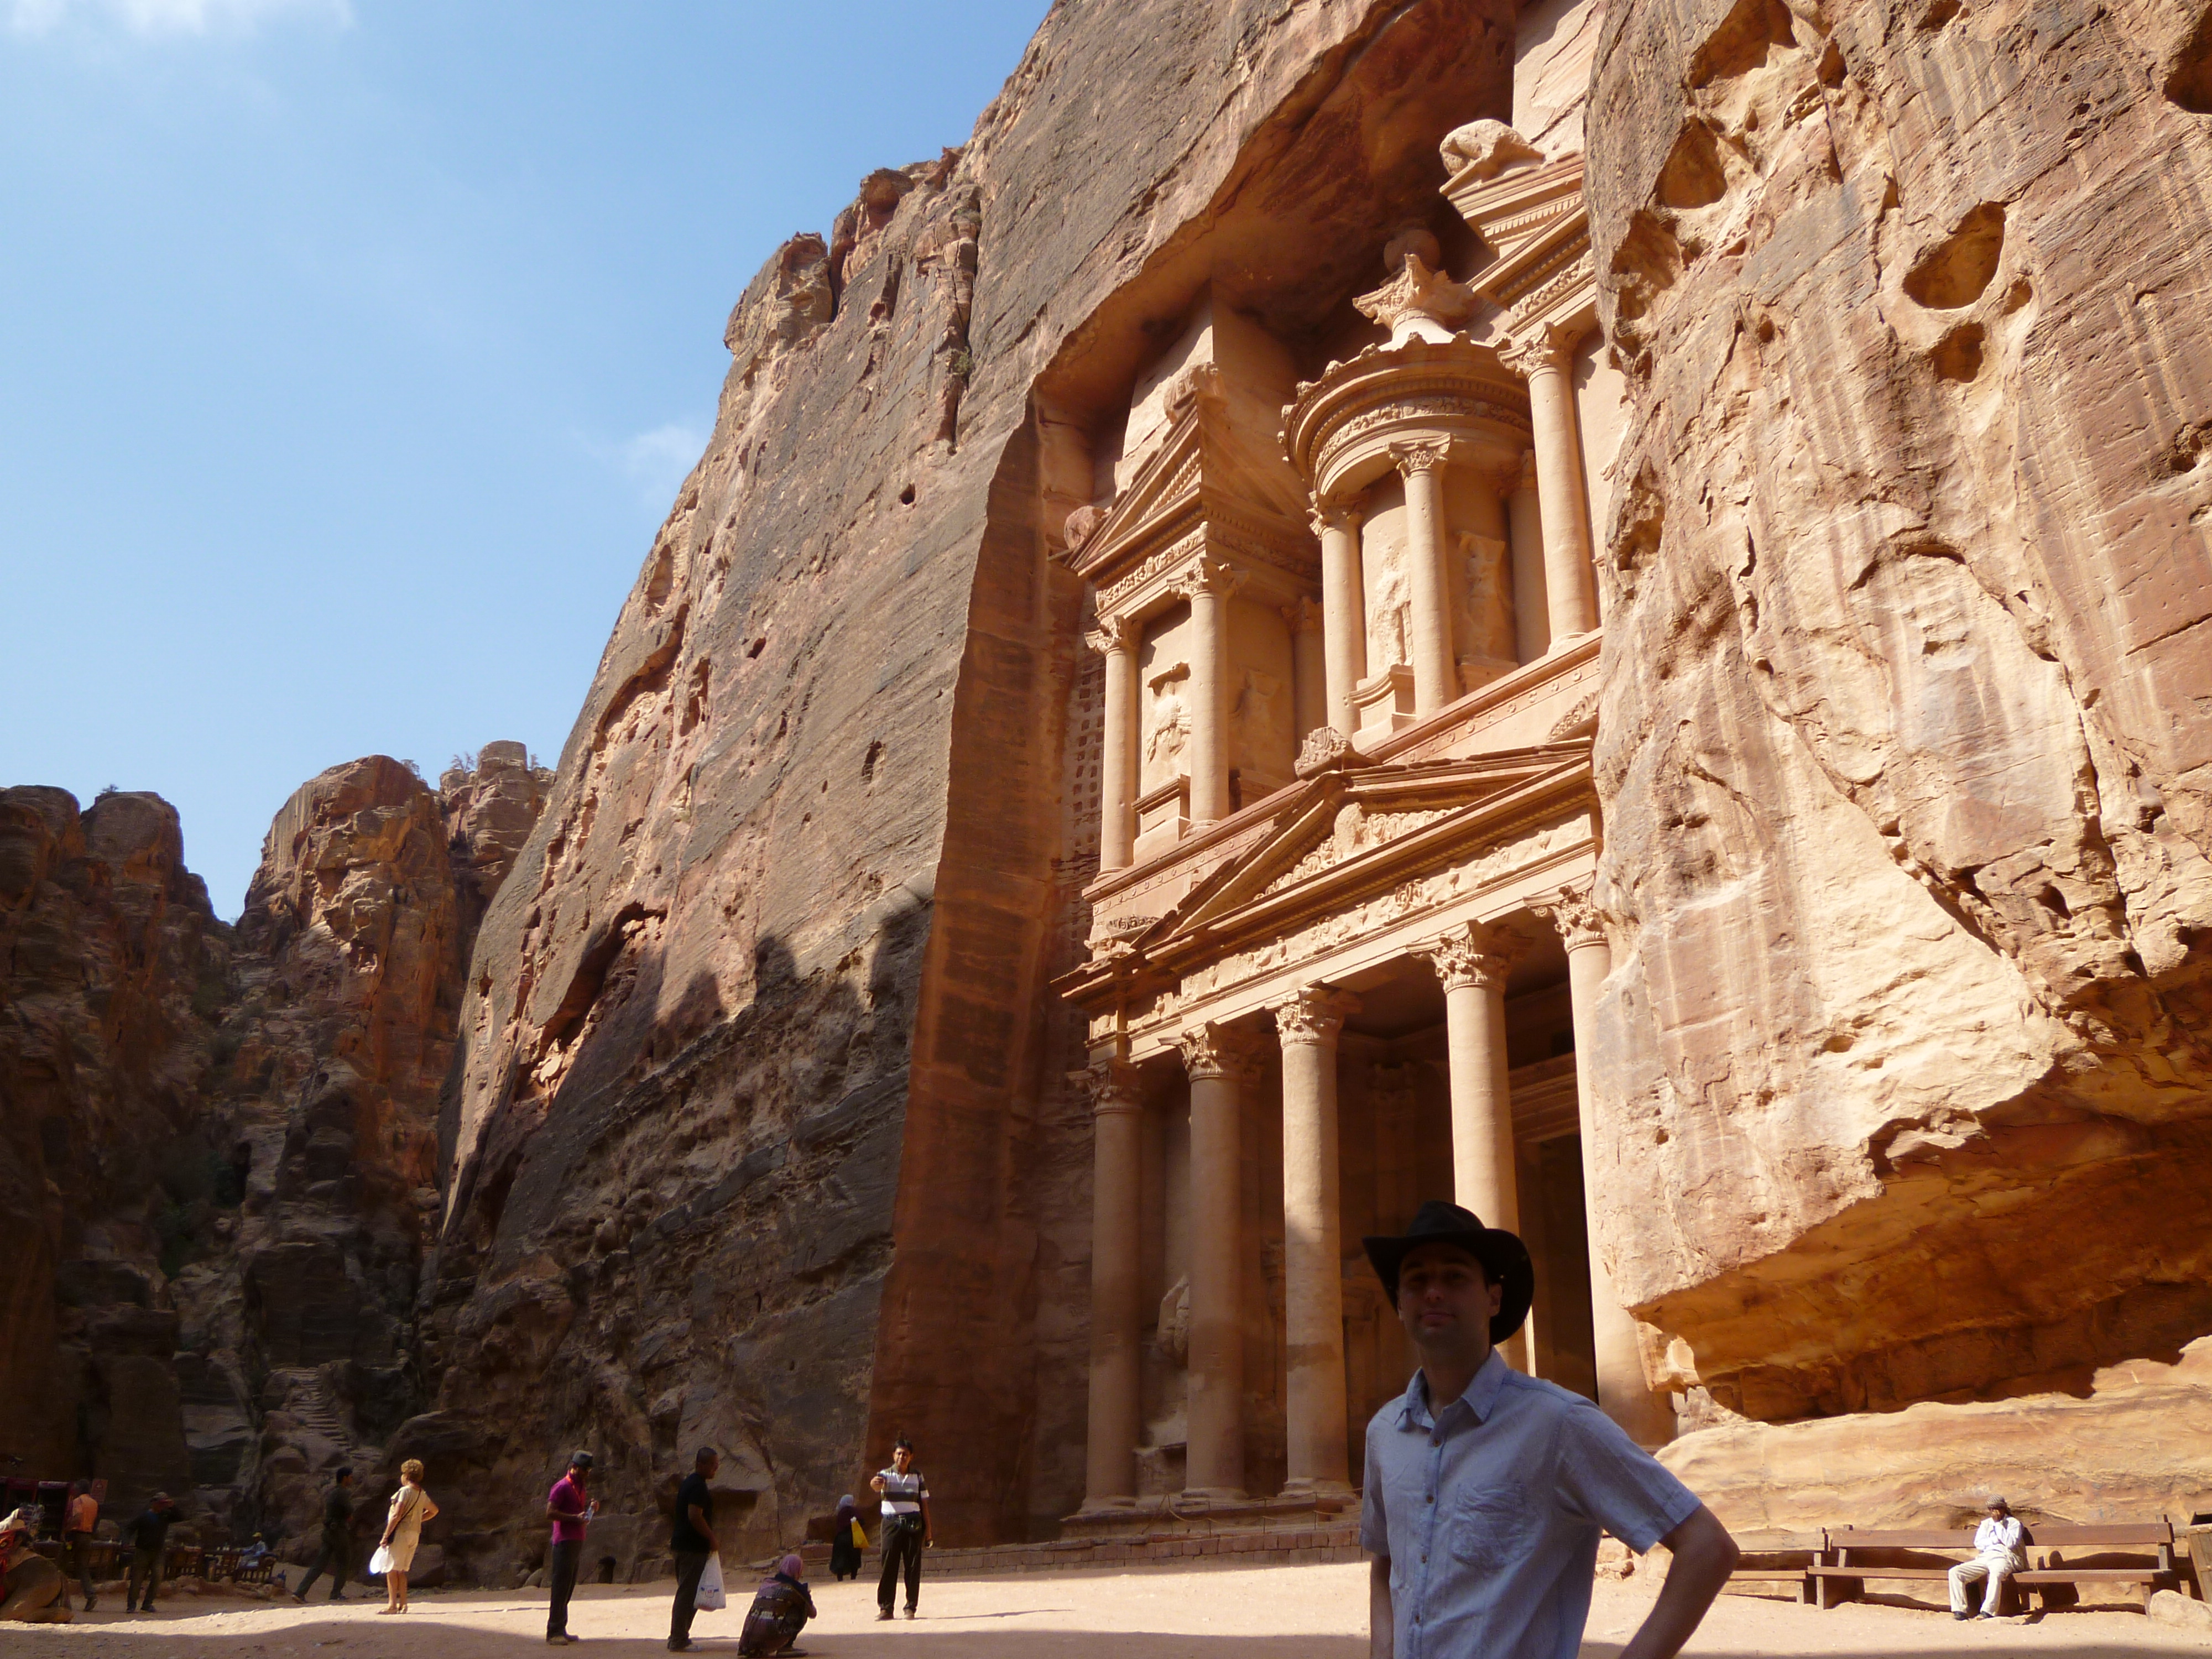 Indiana jones movie in petra